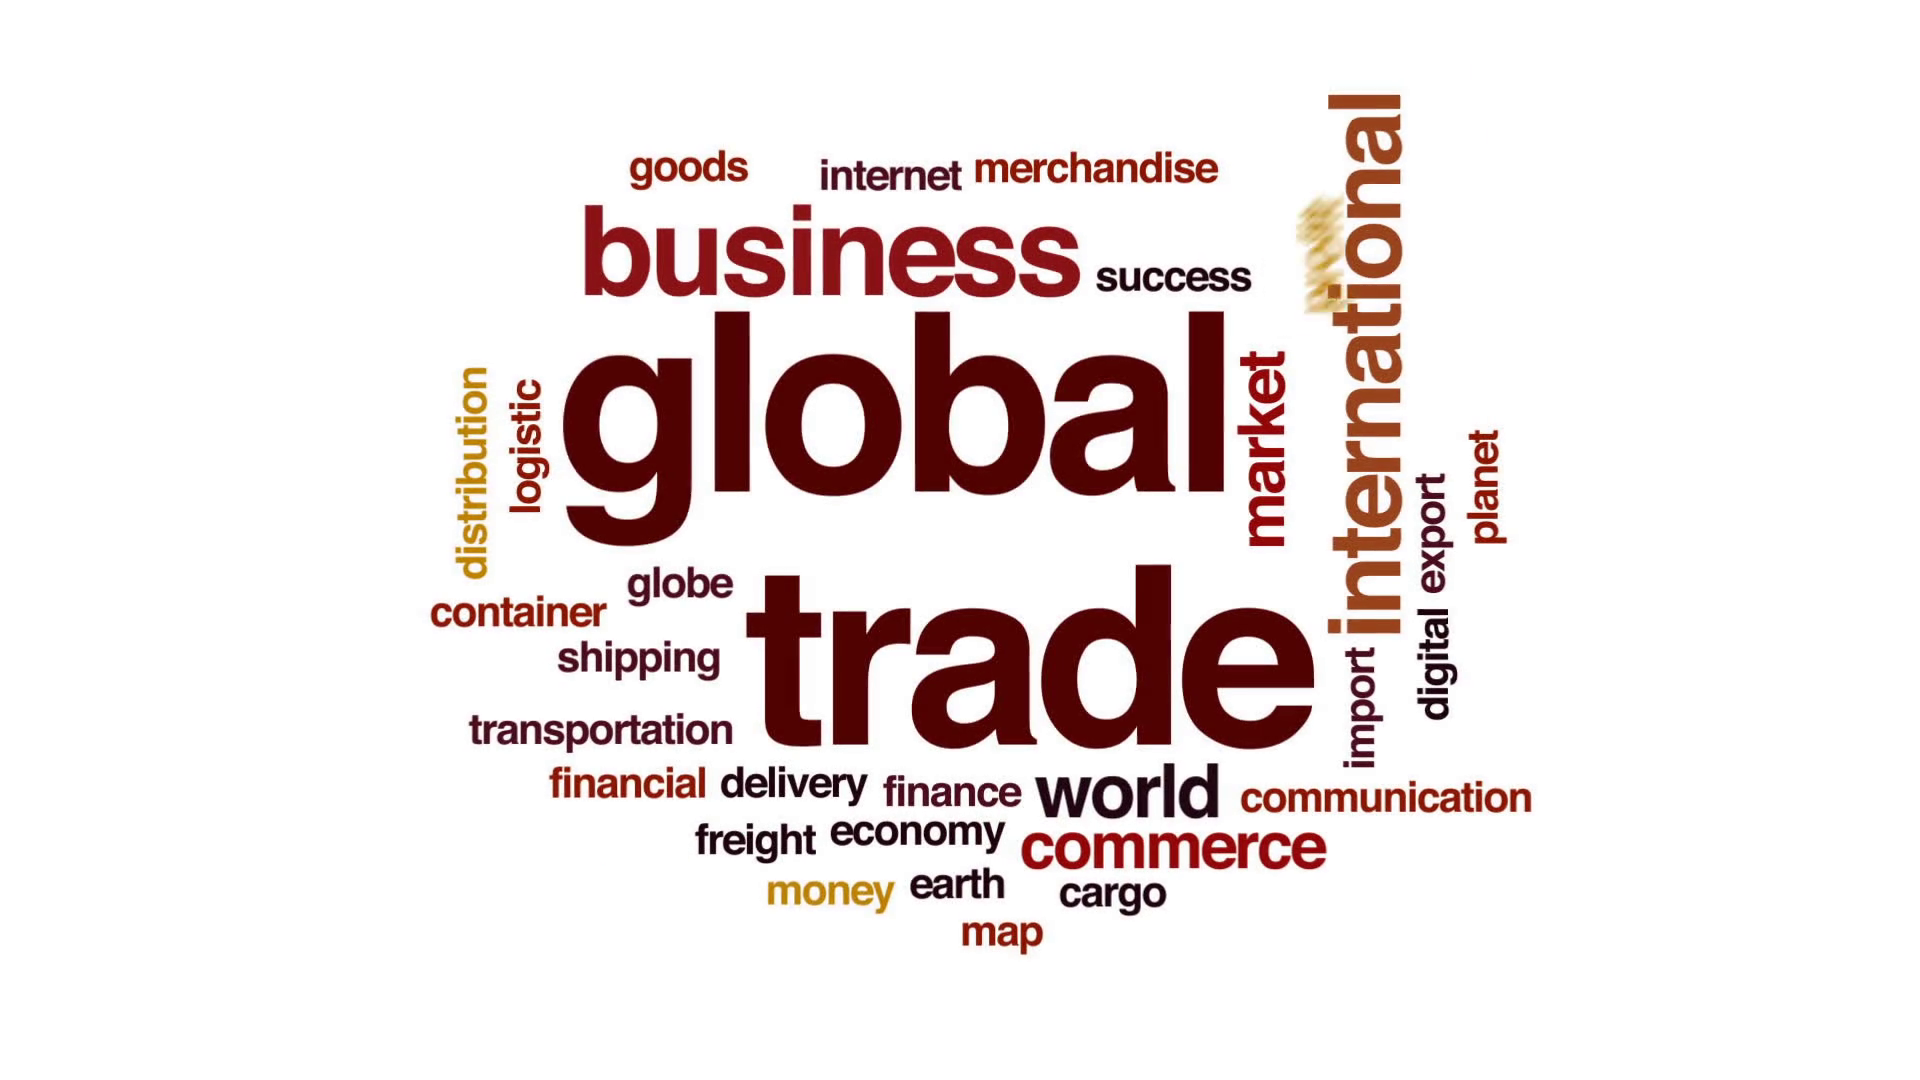 videoblocks-global-trade-animated-word-cloud-text-design-animation_bu8n7gocx_thumbnail-full11